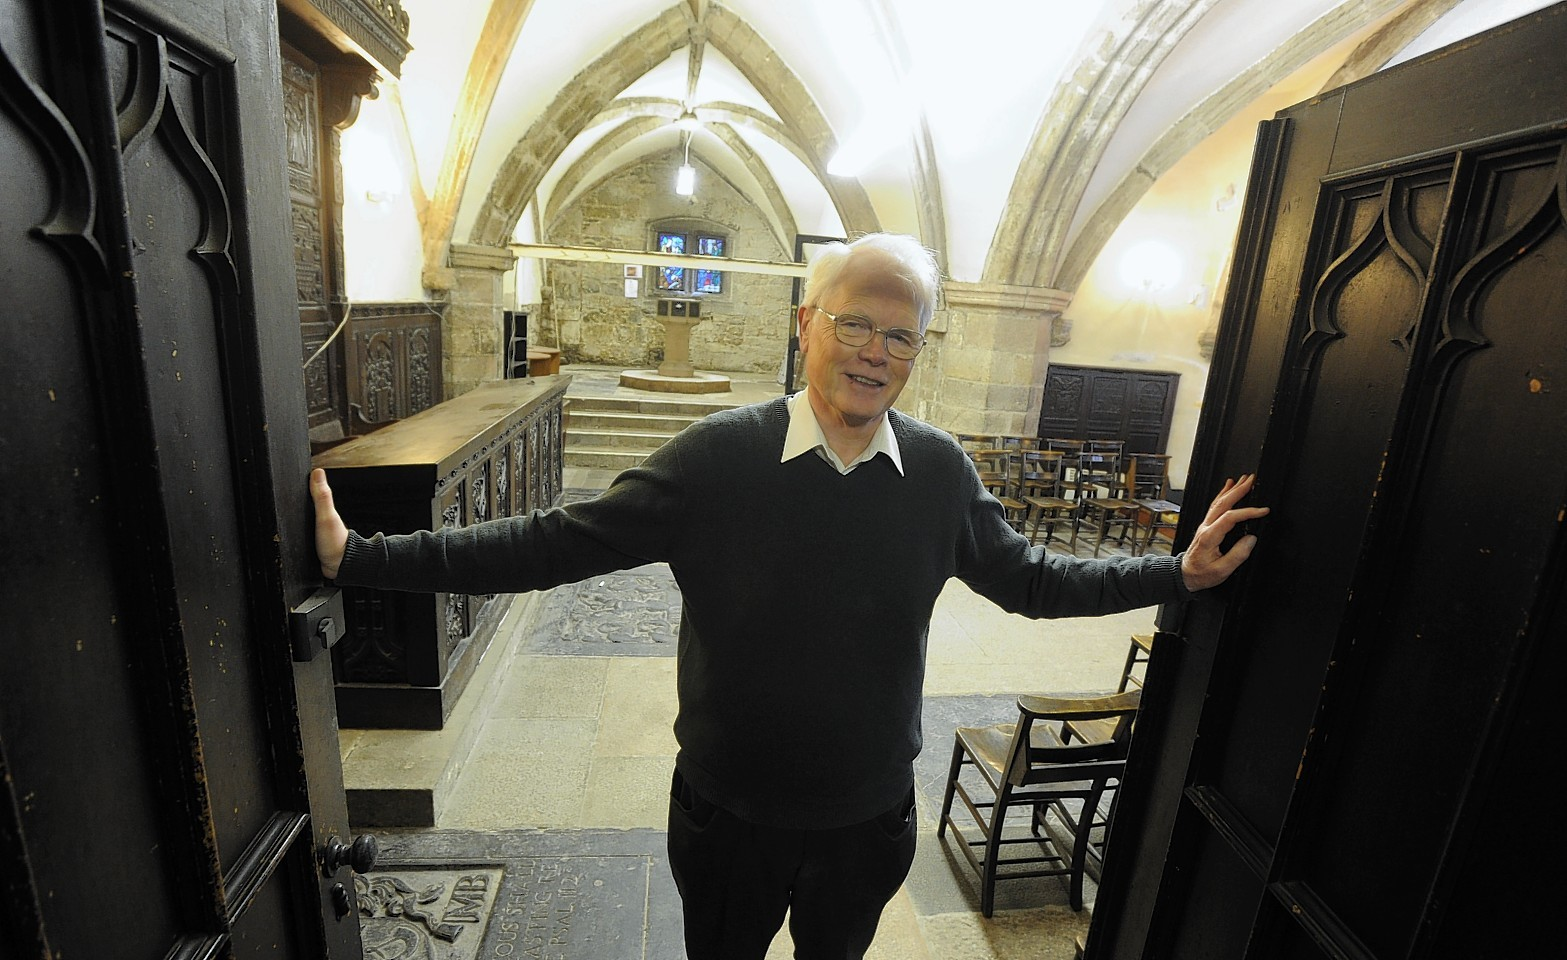 Arthur Winfield has received a BEM for services to heritage in Aberdeen for leading a project at the Mither Kirk